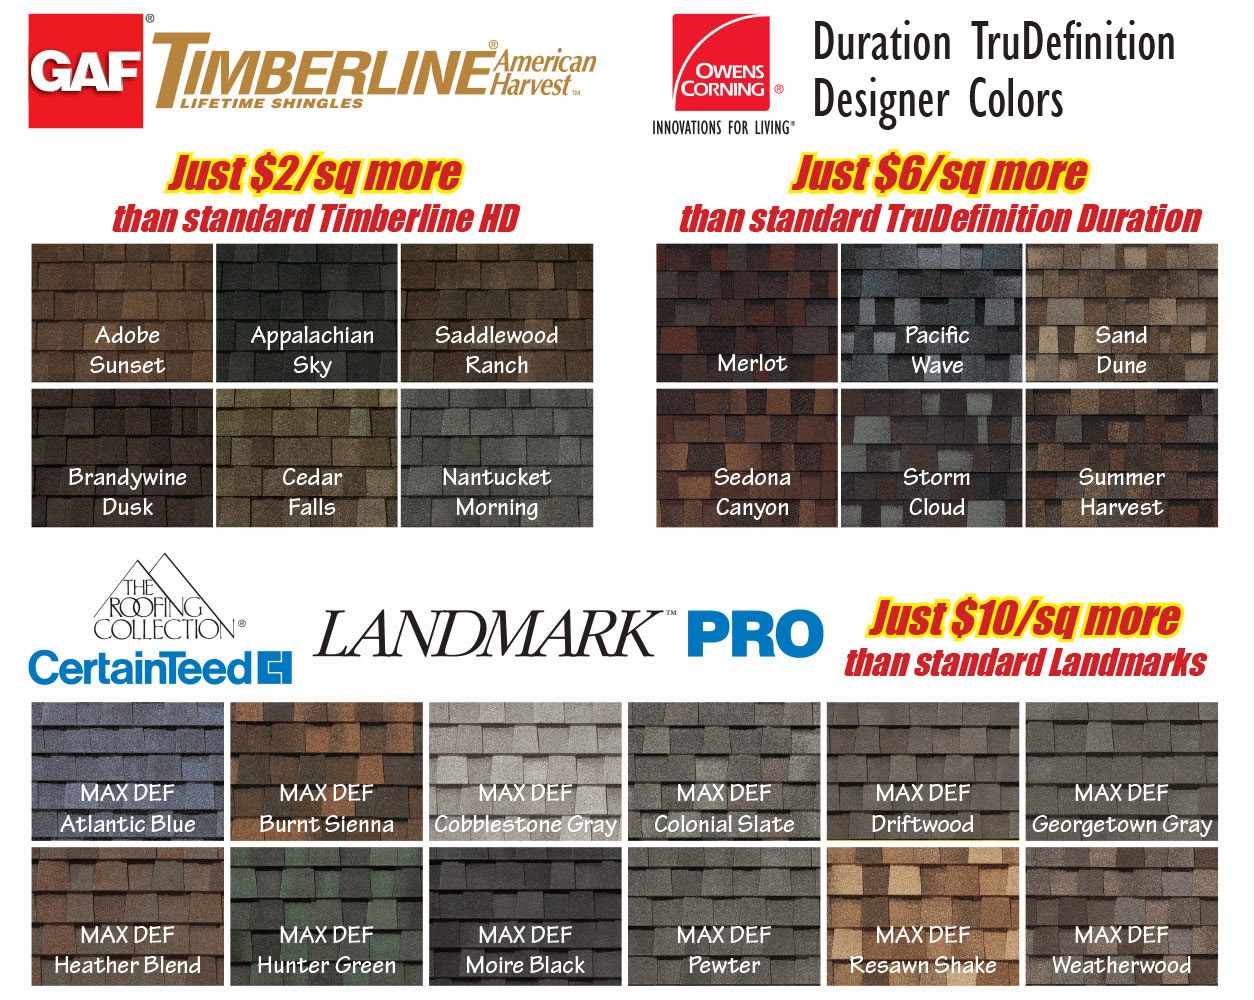 shingle color upgrades can help boost your profit | the wimsatt